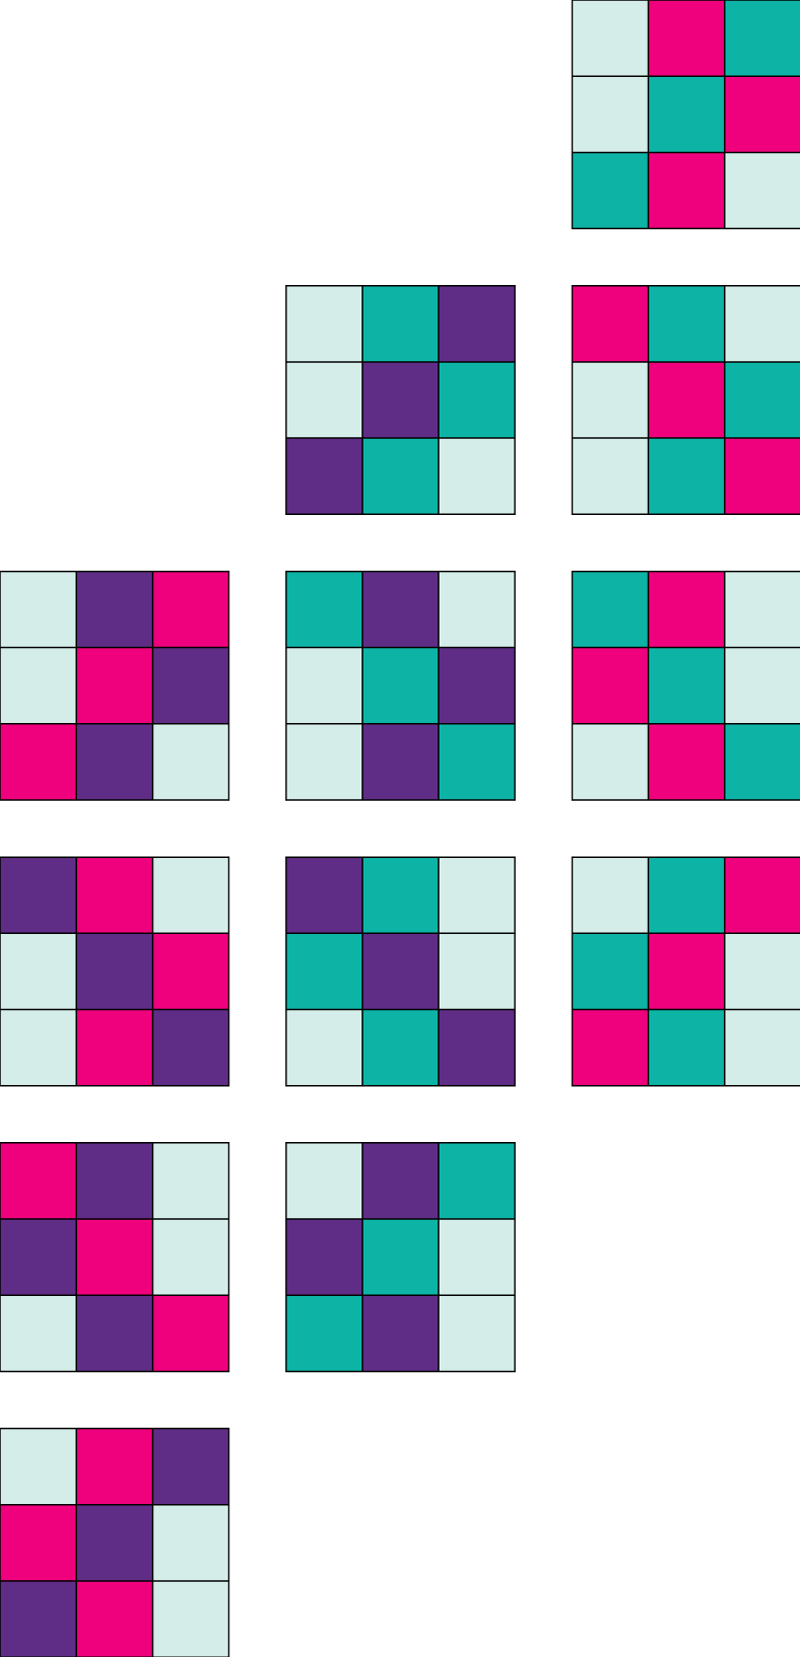 Step by step quilt top design process - Braided 9 Patch -Offset the columns.Column 1 stays in place,column 2 moves up one block length,column 3 moves up two block lengths.